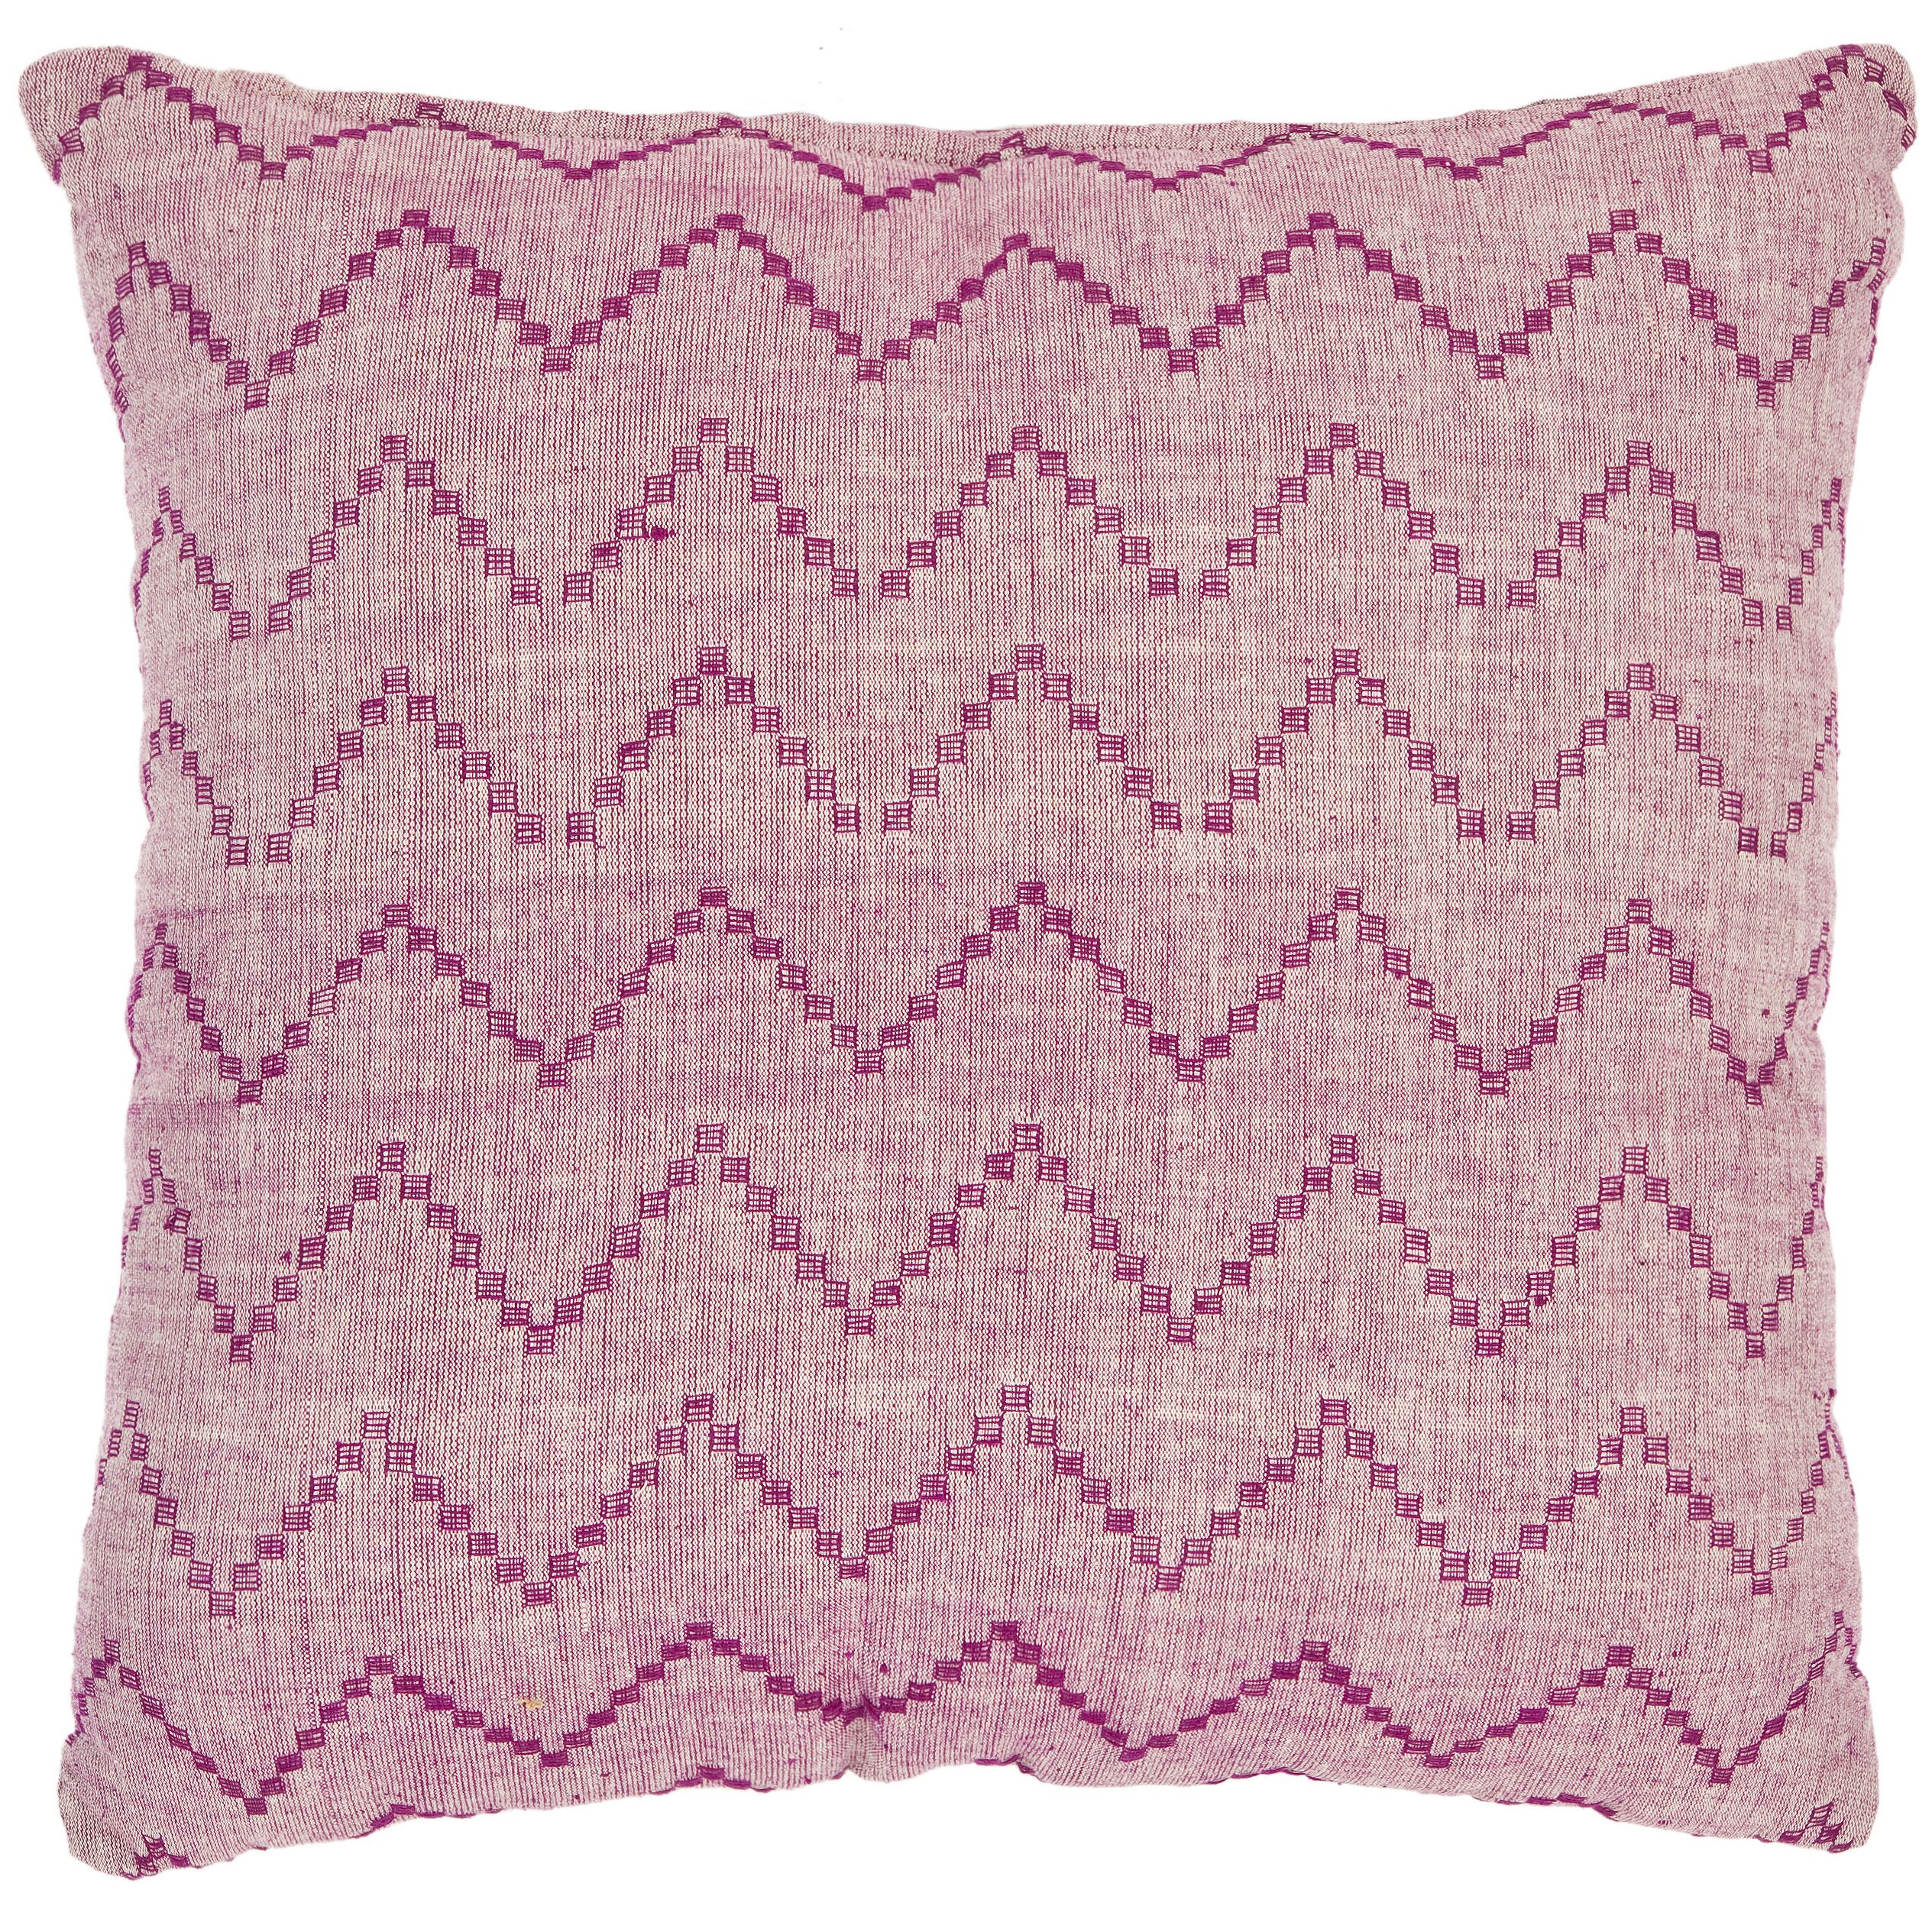 Brayden Studio Godley Decorative Pillows in Rose Red and Purple (Set of 2) & Reviews Wayfair